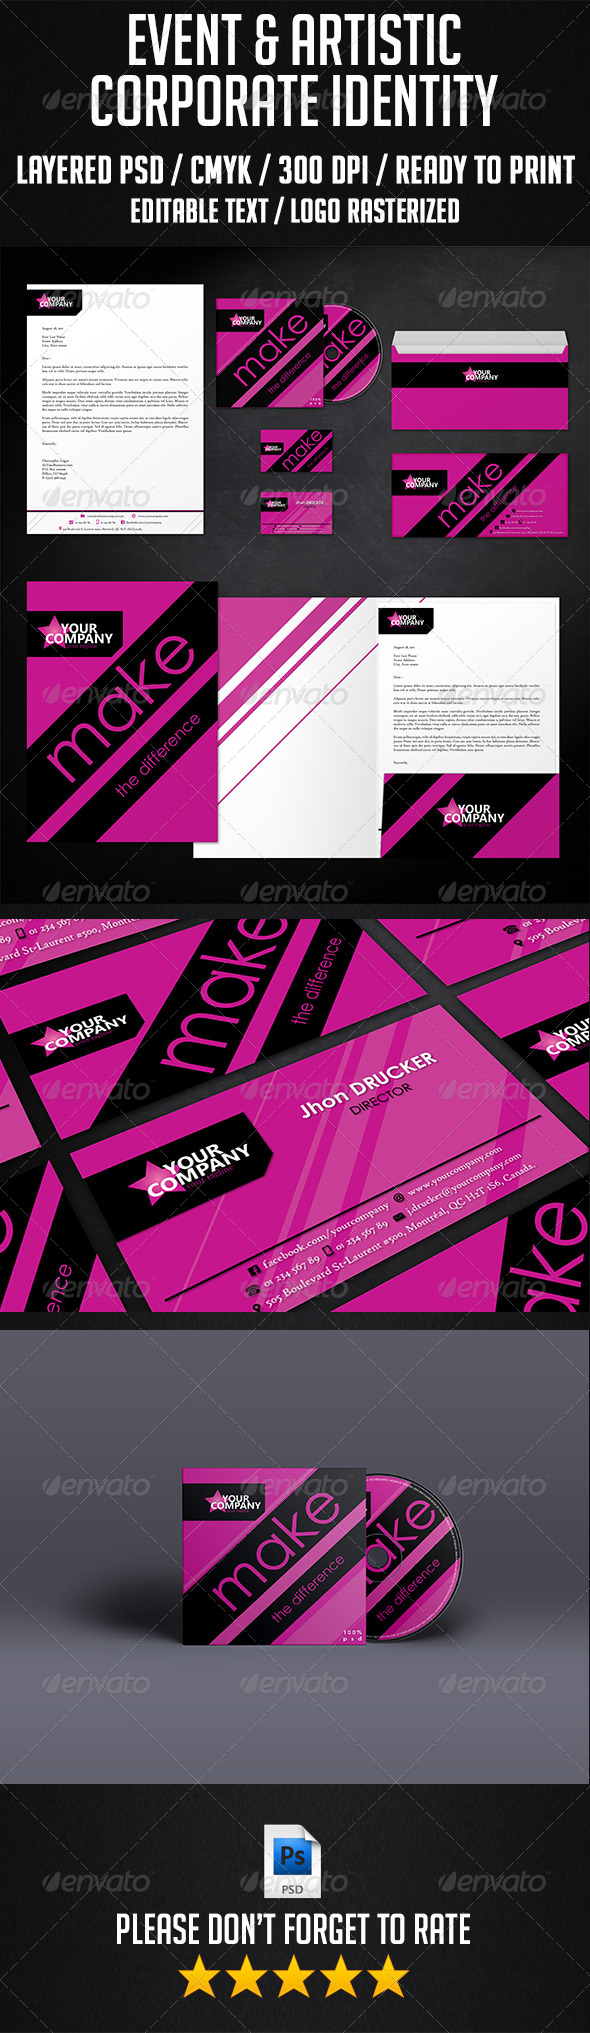 GraphicRiver Event and Artistic Corporate Identity 6569808